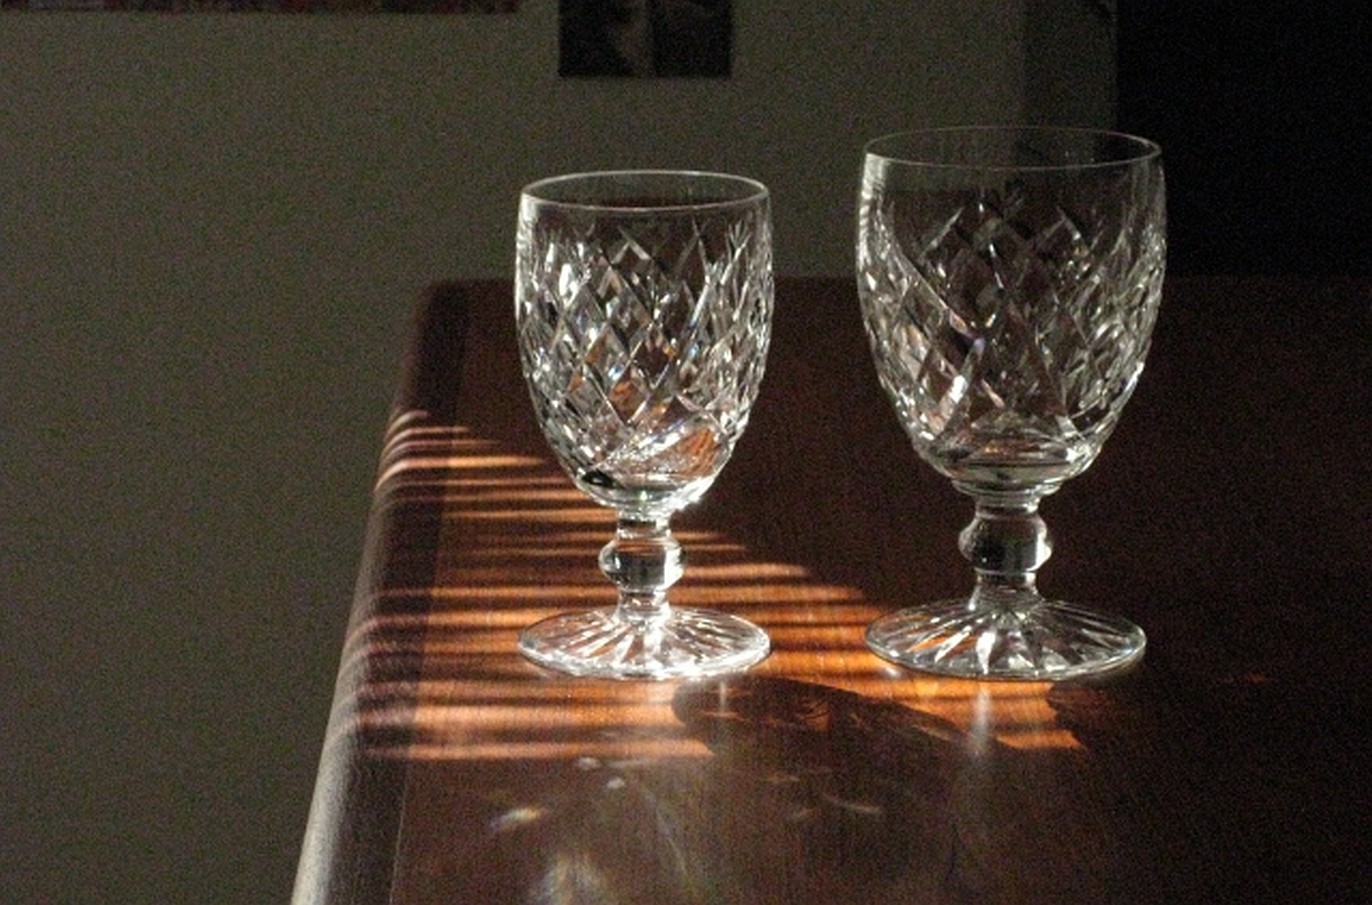 T3a. Waterford small goblet next to large